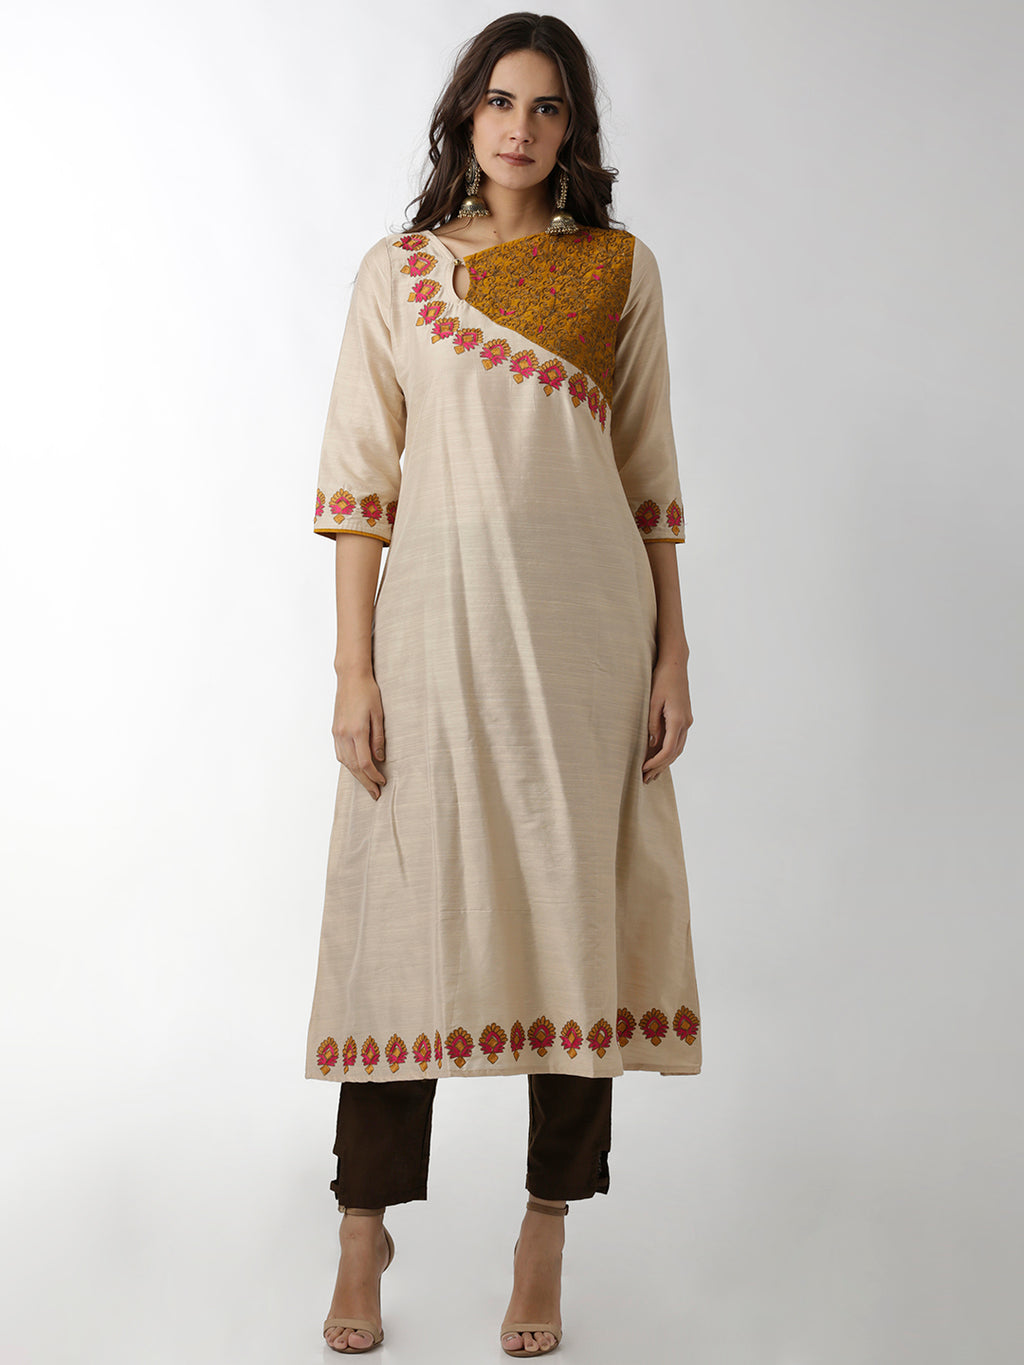 Breya Embroidered Cream And Yellow A-Line Kurta